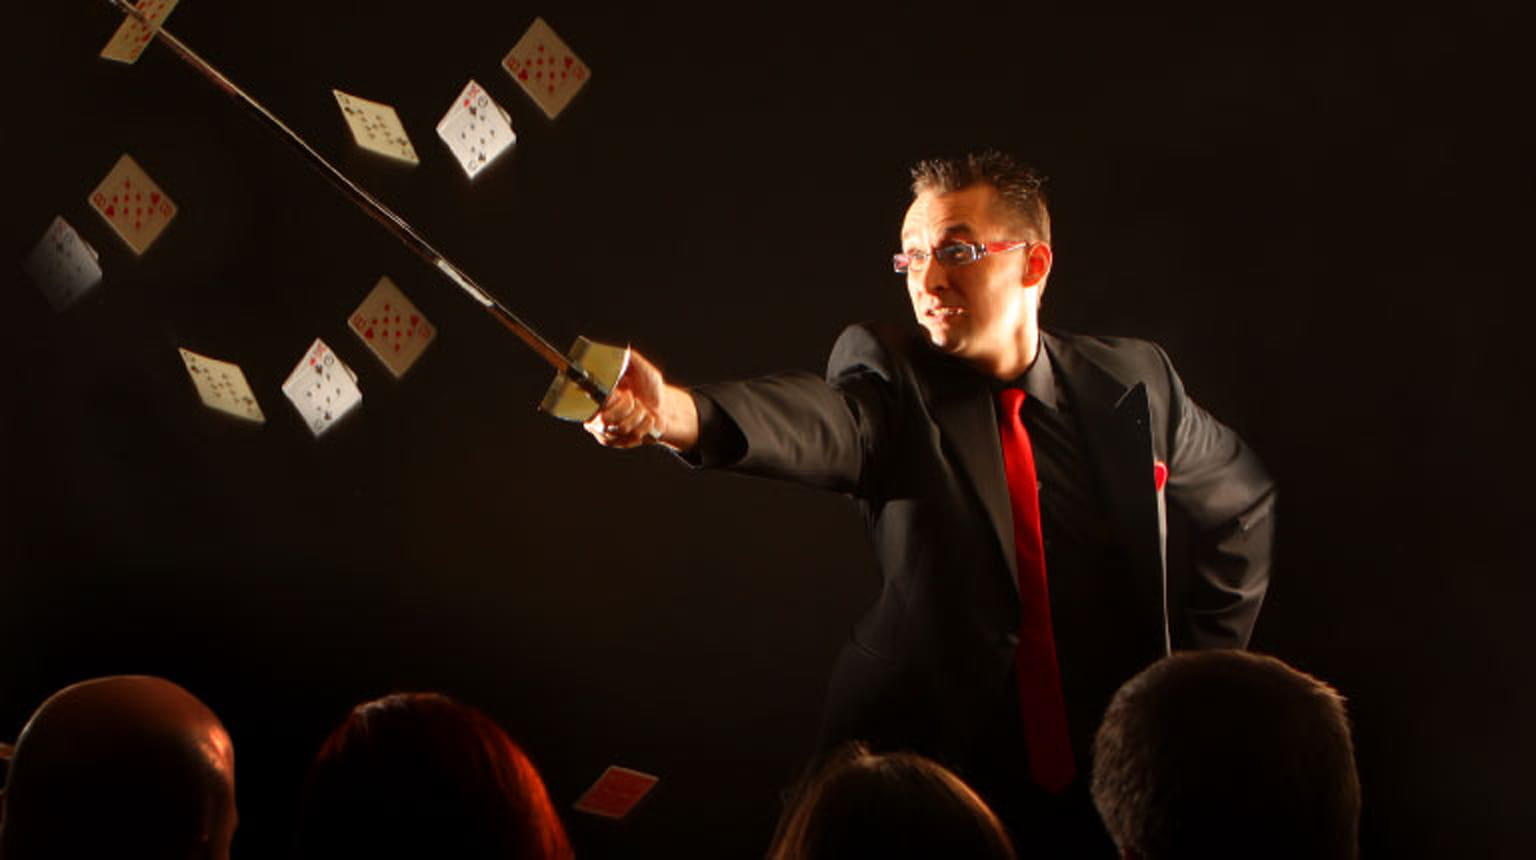 Carsten Skill, Senior Manager of Project Engineering at CSL Behring in Marburg, Germany, has practiced magic for close to 30 years.